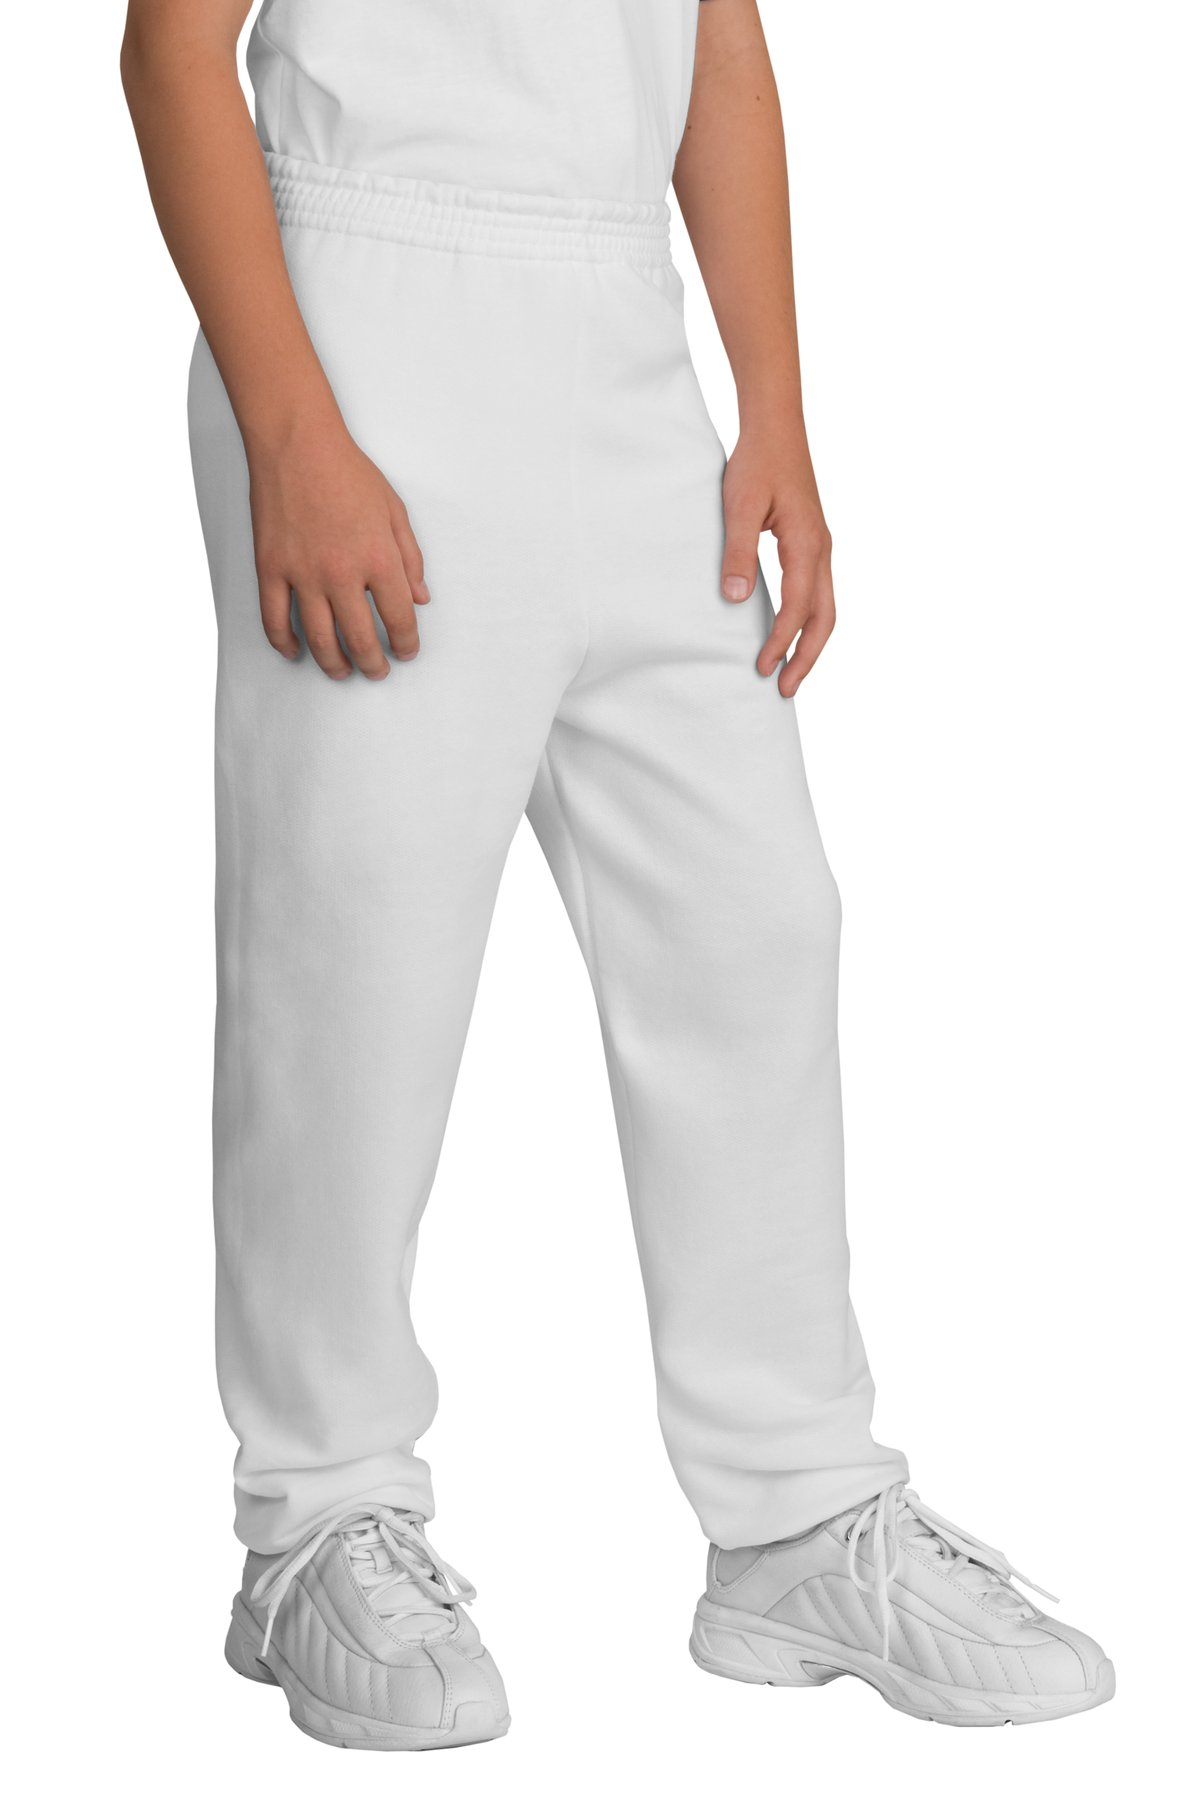 Port & Company ®  - Youth Core Fleece Sweatpant.  PC90YP - White